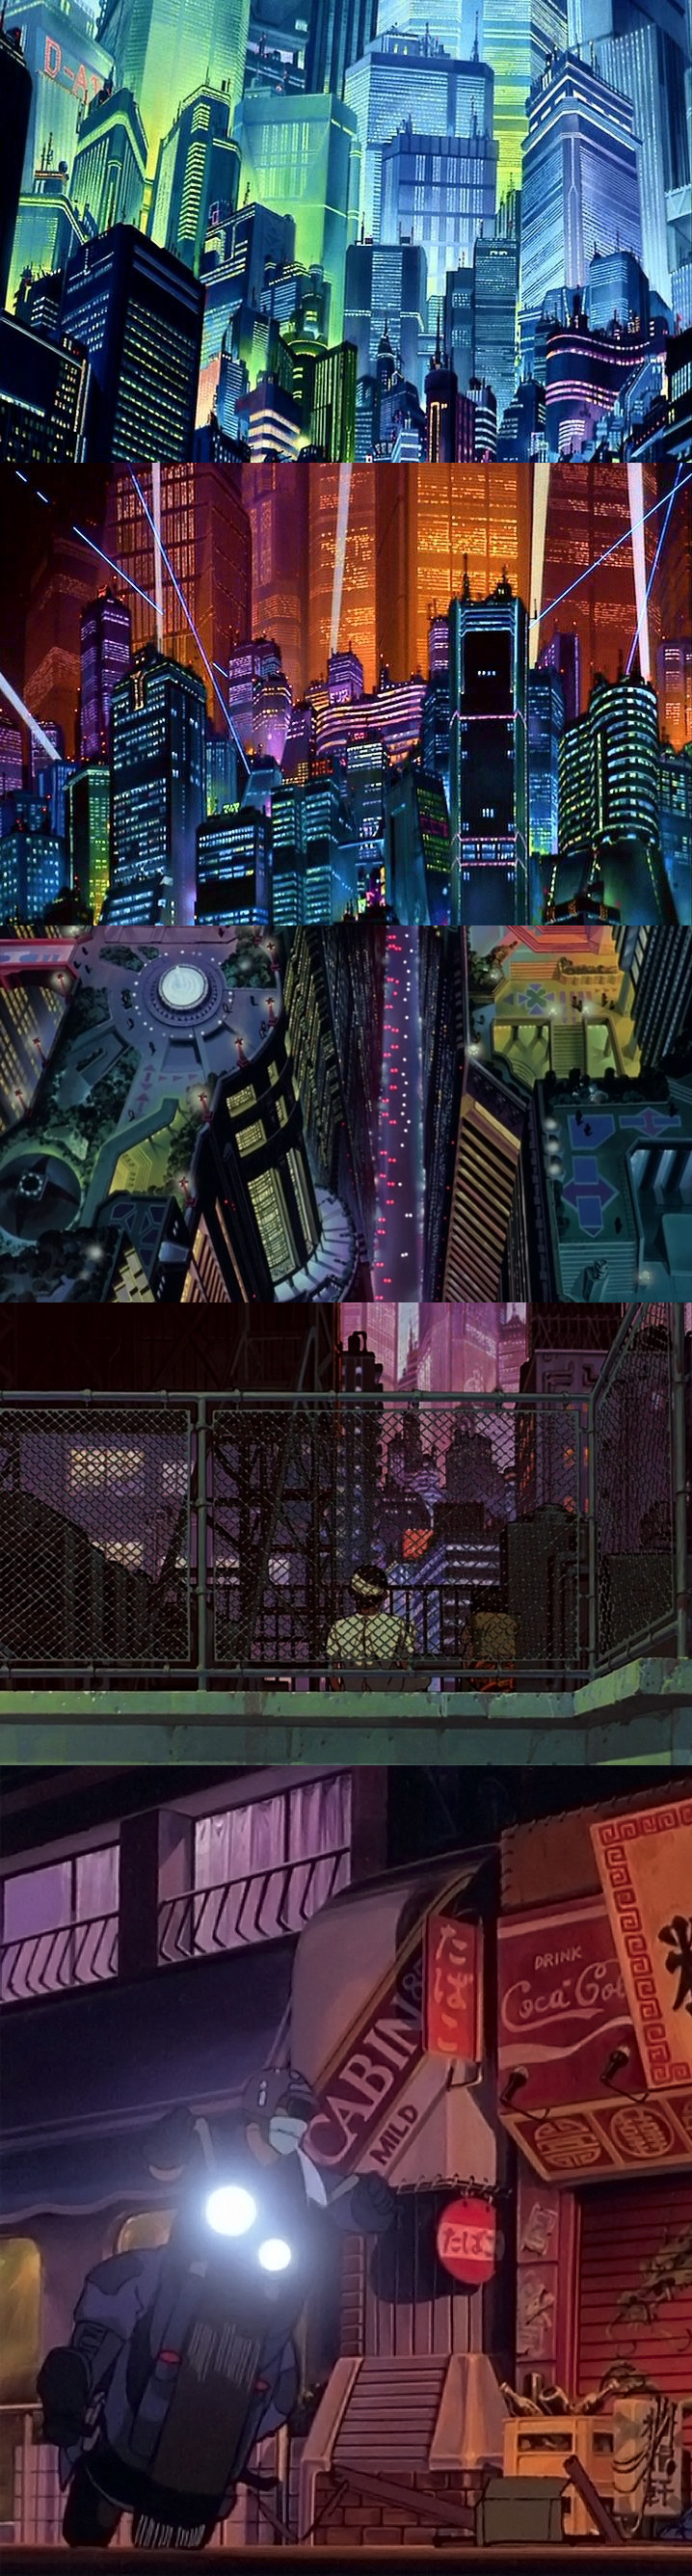 Screen stills from Akira. random insperation Pinterest